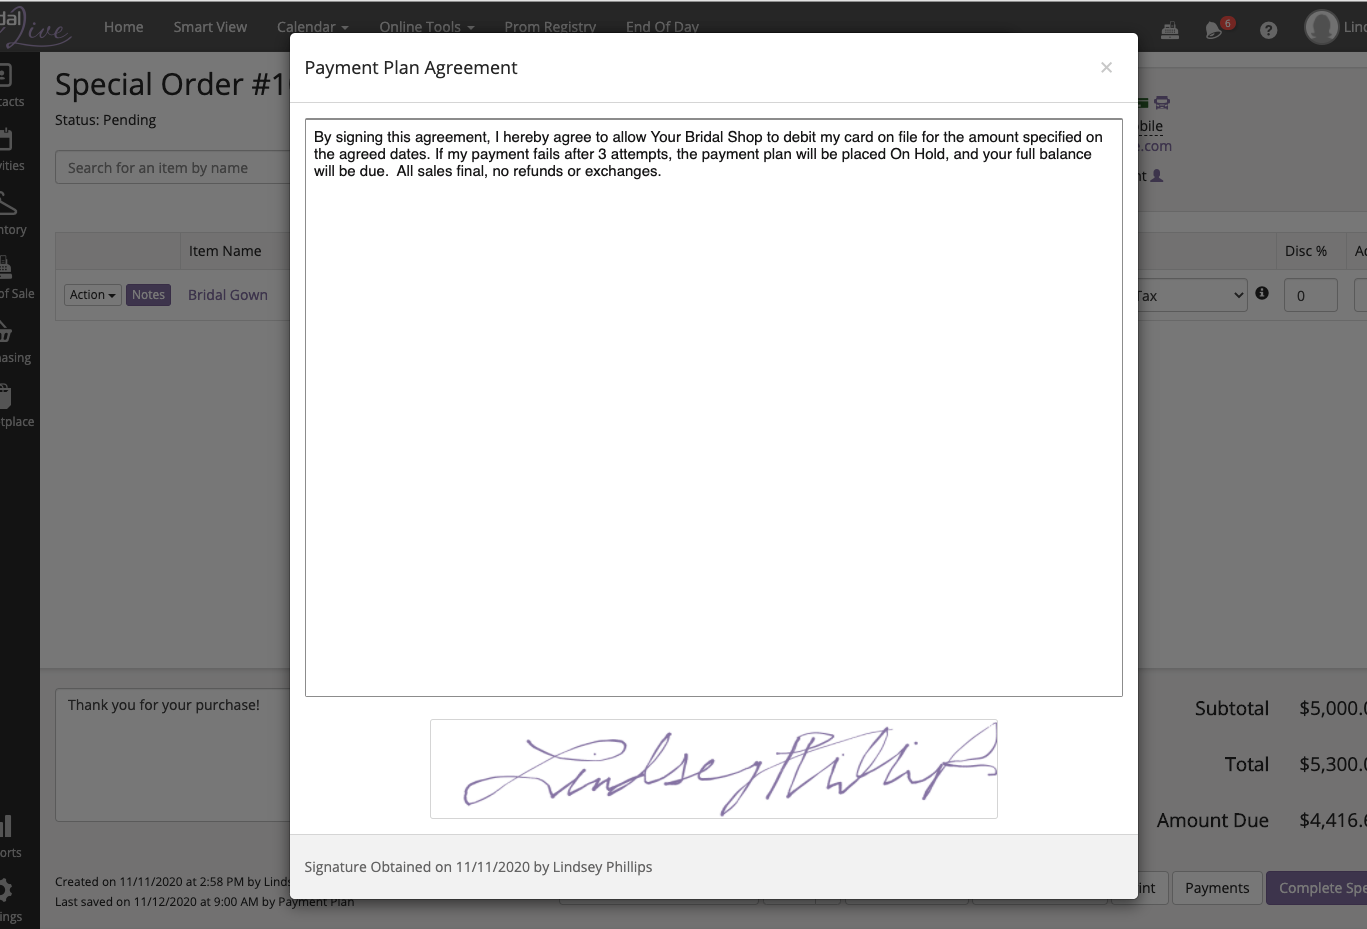 paymentplansignature.png